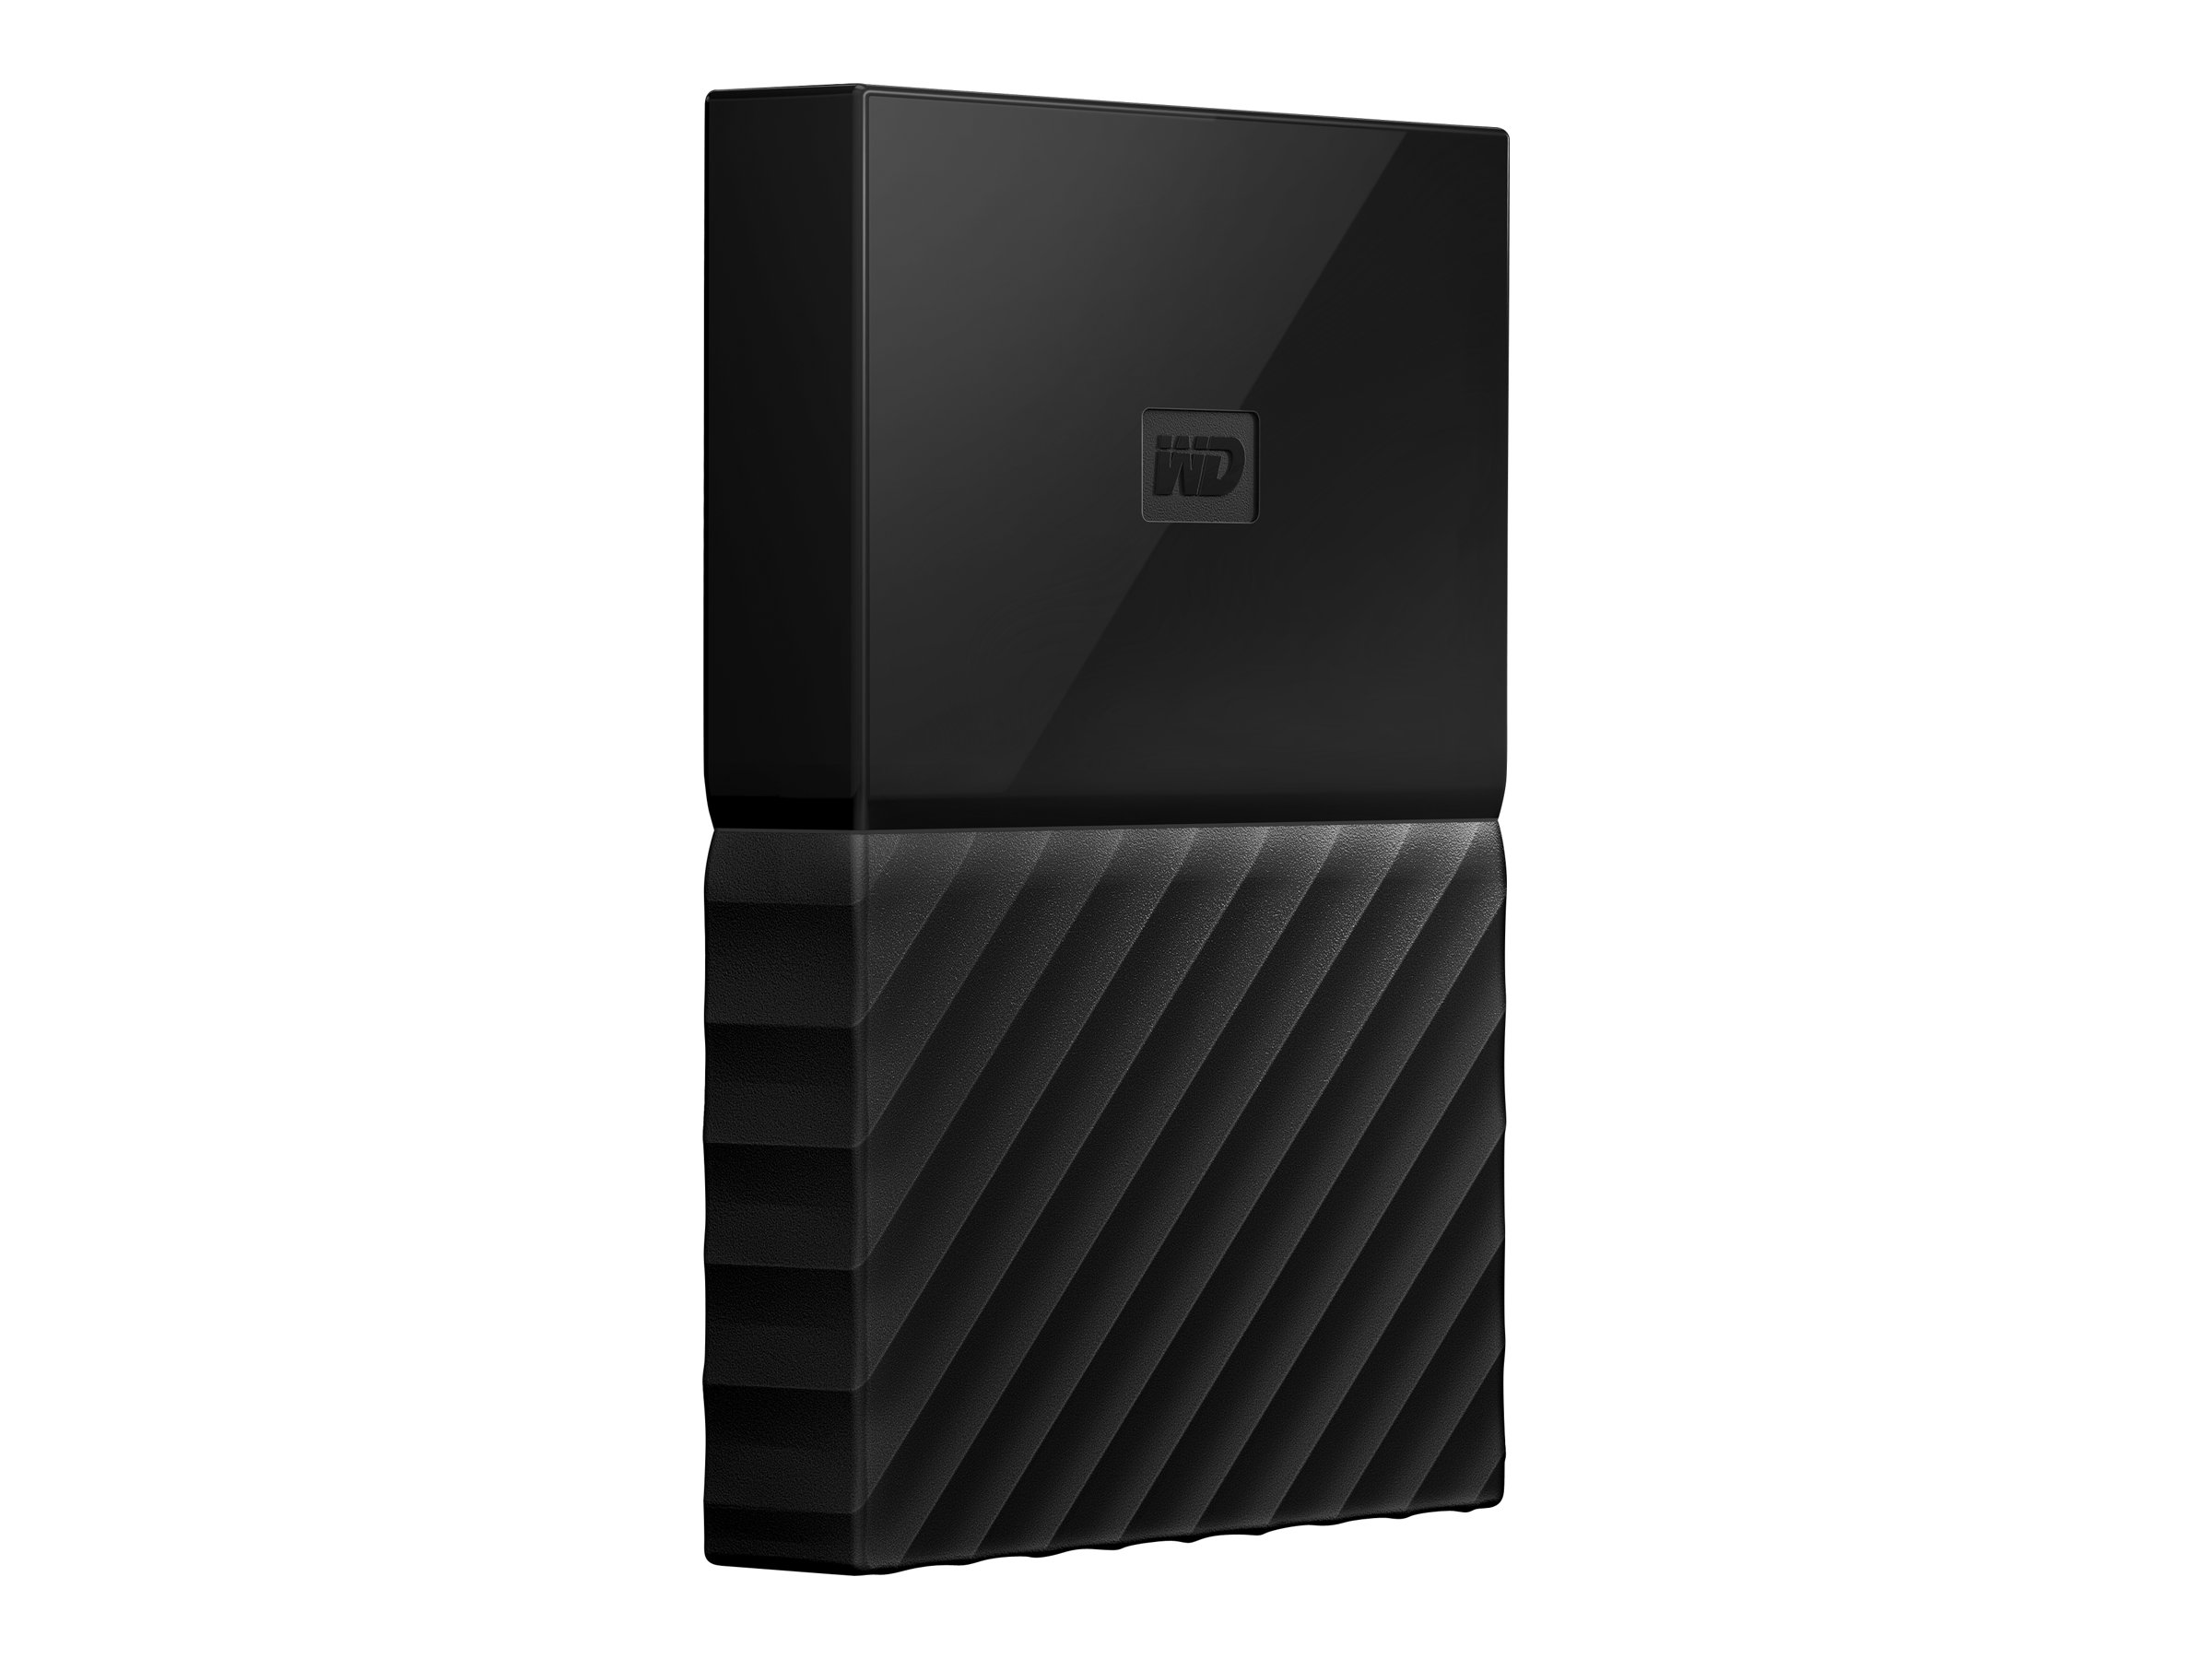 WD My Passport for Mac WDBP6A0040BBK - hard drive - 4 TB - USB 3.0